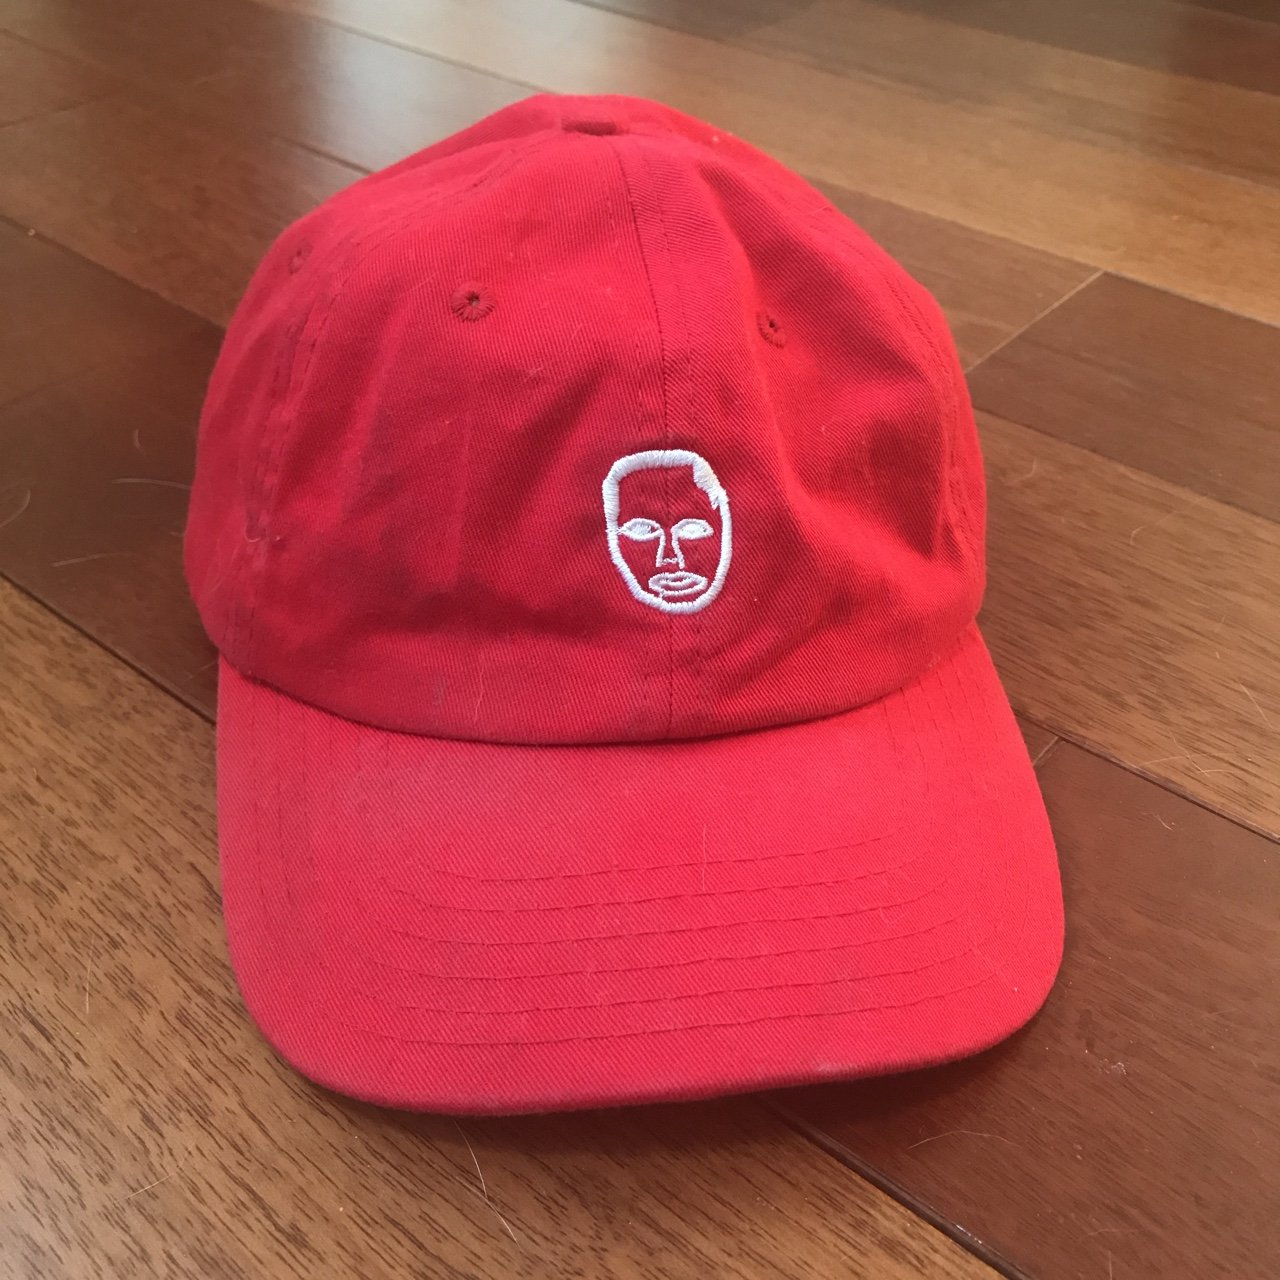 Bright Red Earl Sweatshirt Dad hat! Worn once and I will it - Depop 0b8739617e1